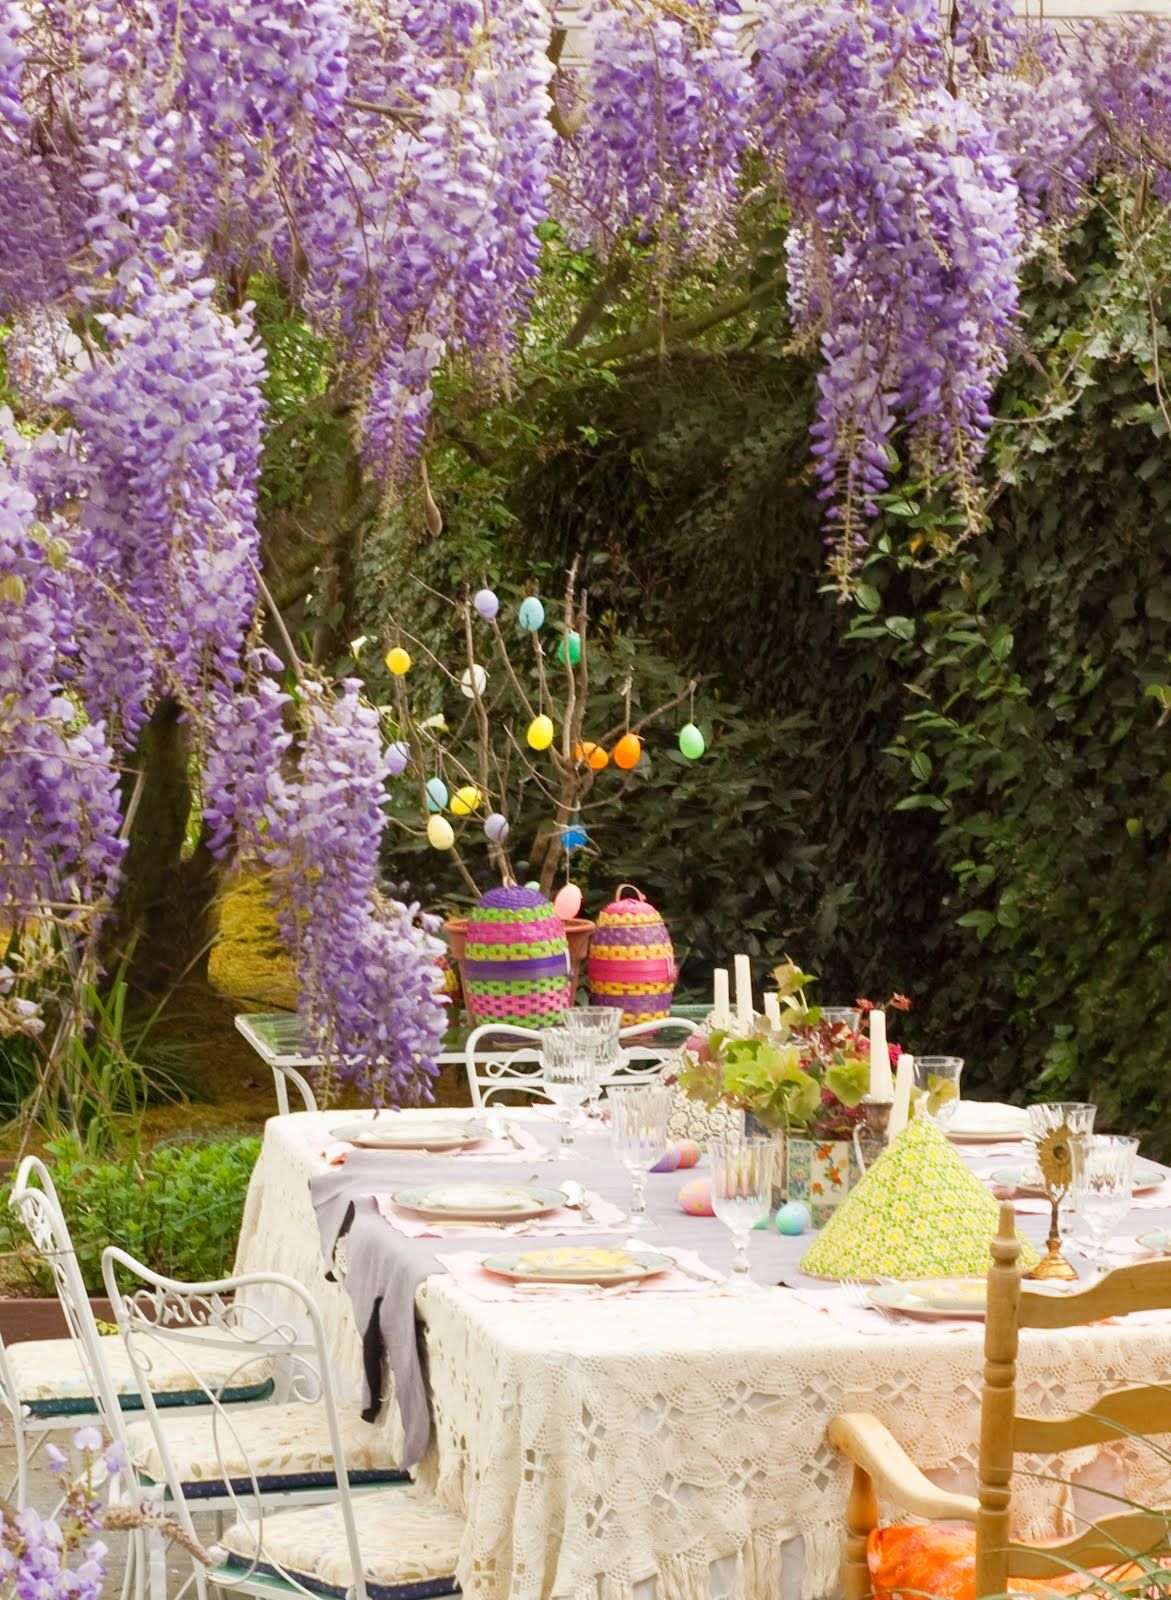 Easter decoration outdoor - Easter Decorations For The Garden Purple Wisteria Flowers